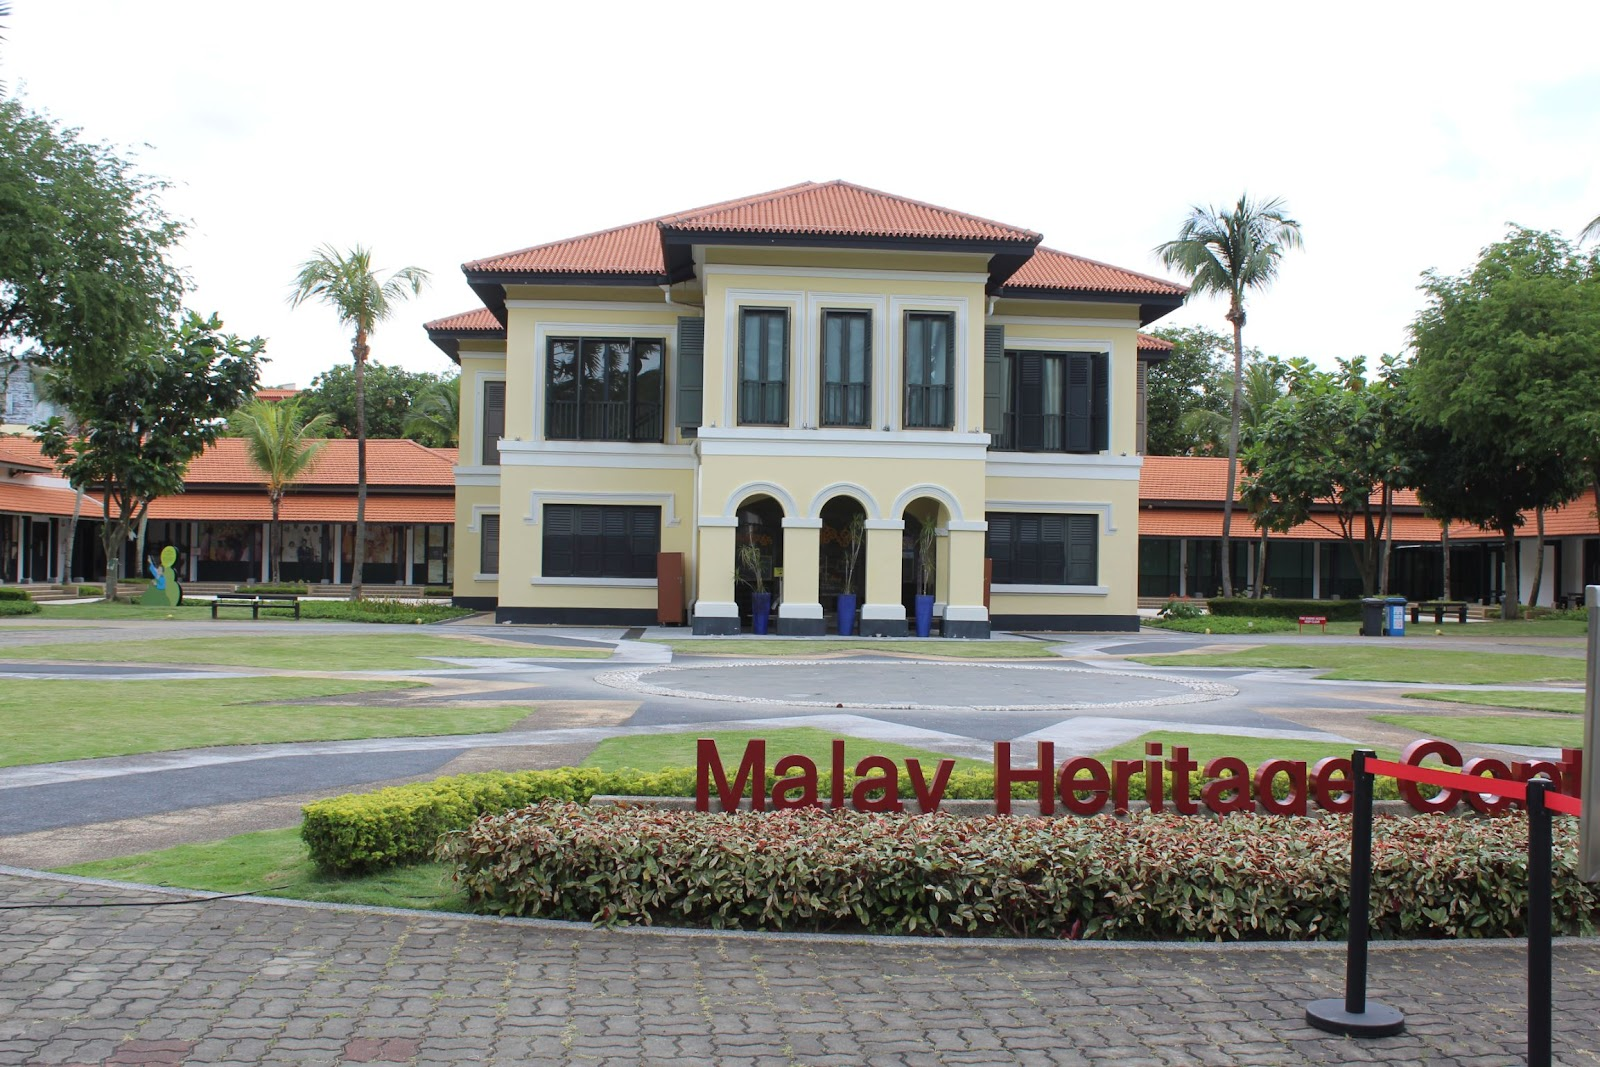 Malay Heritage Centre grounds and building